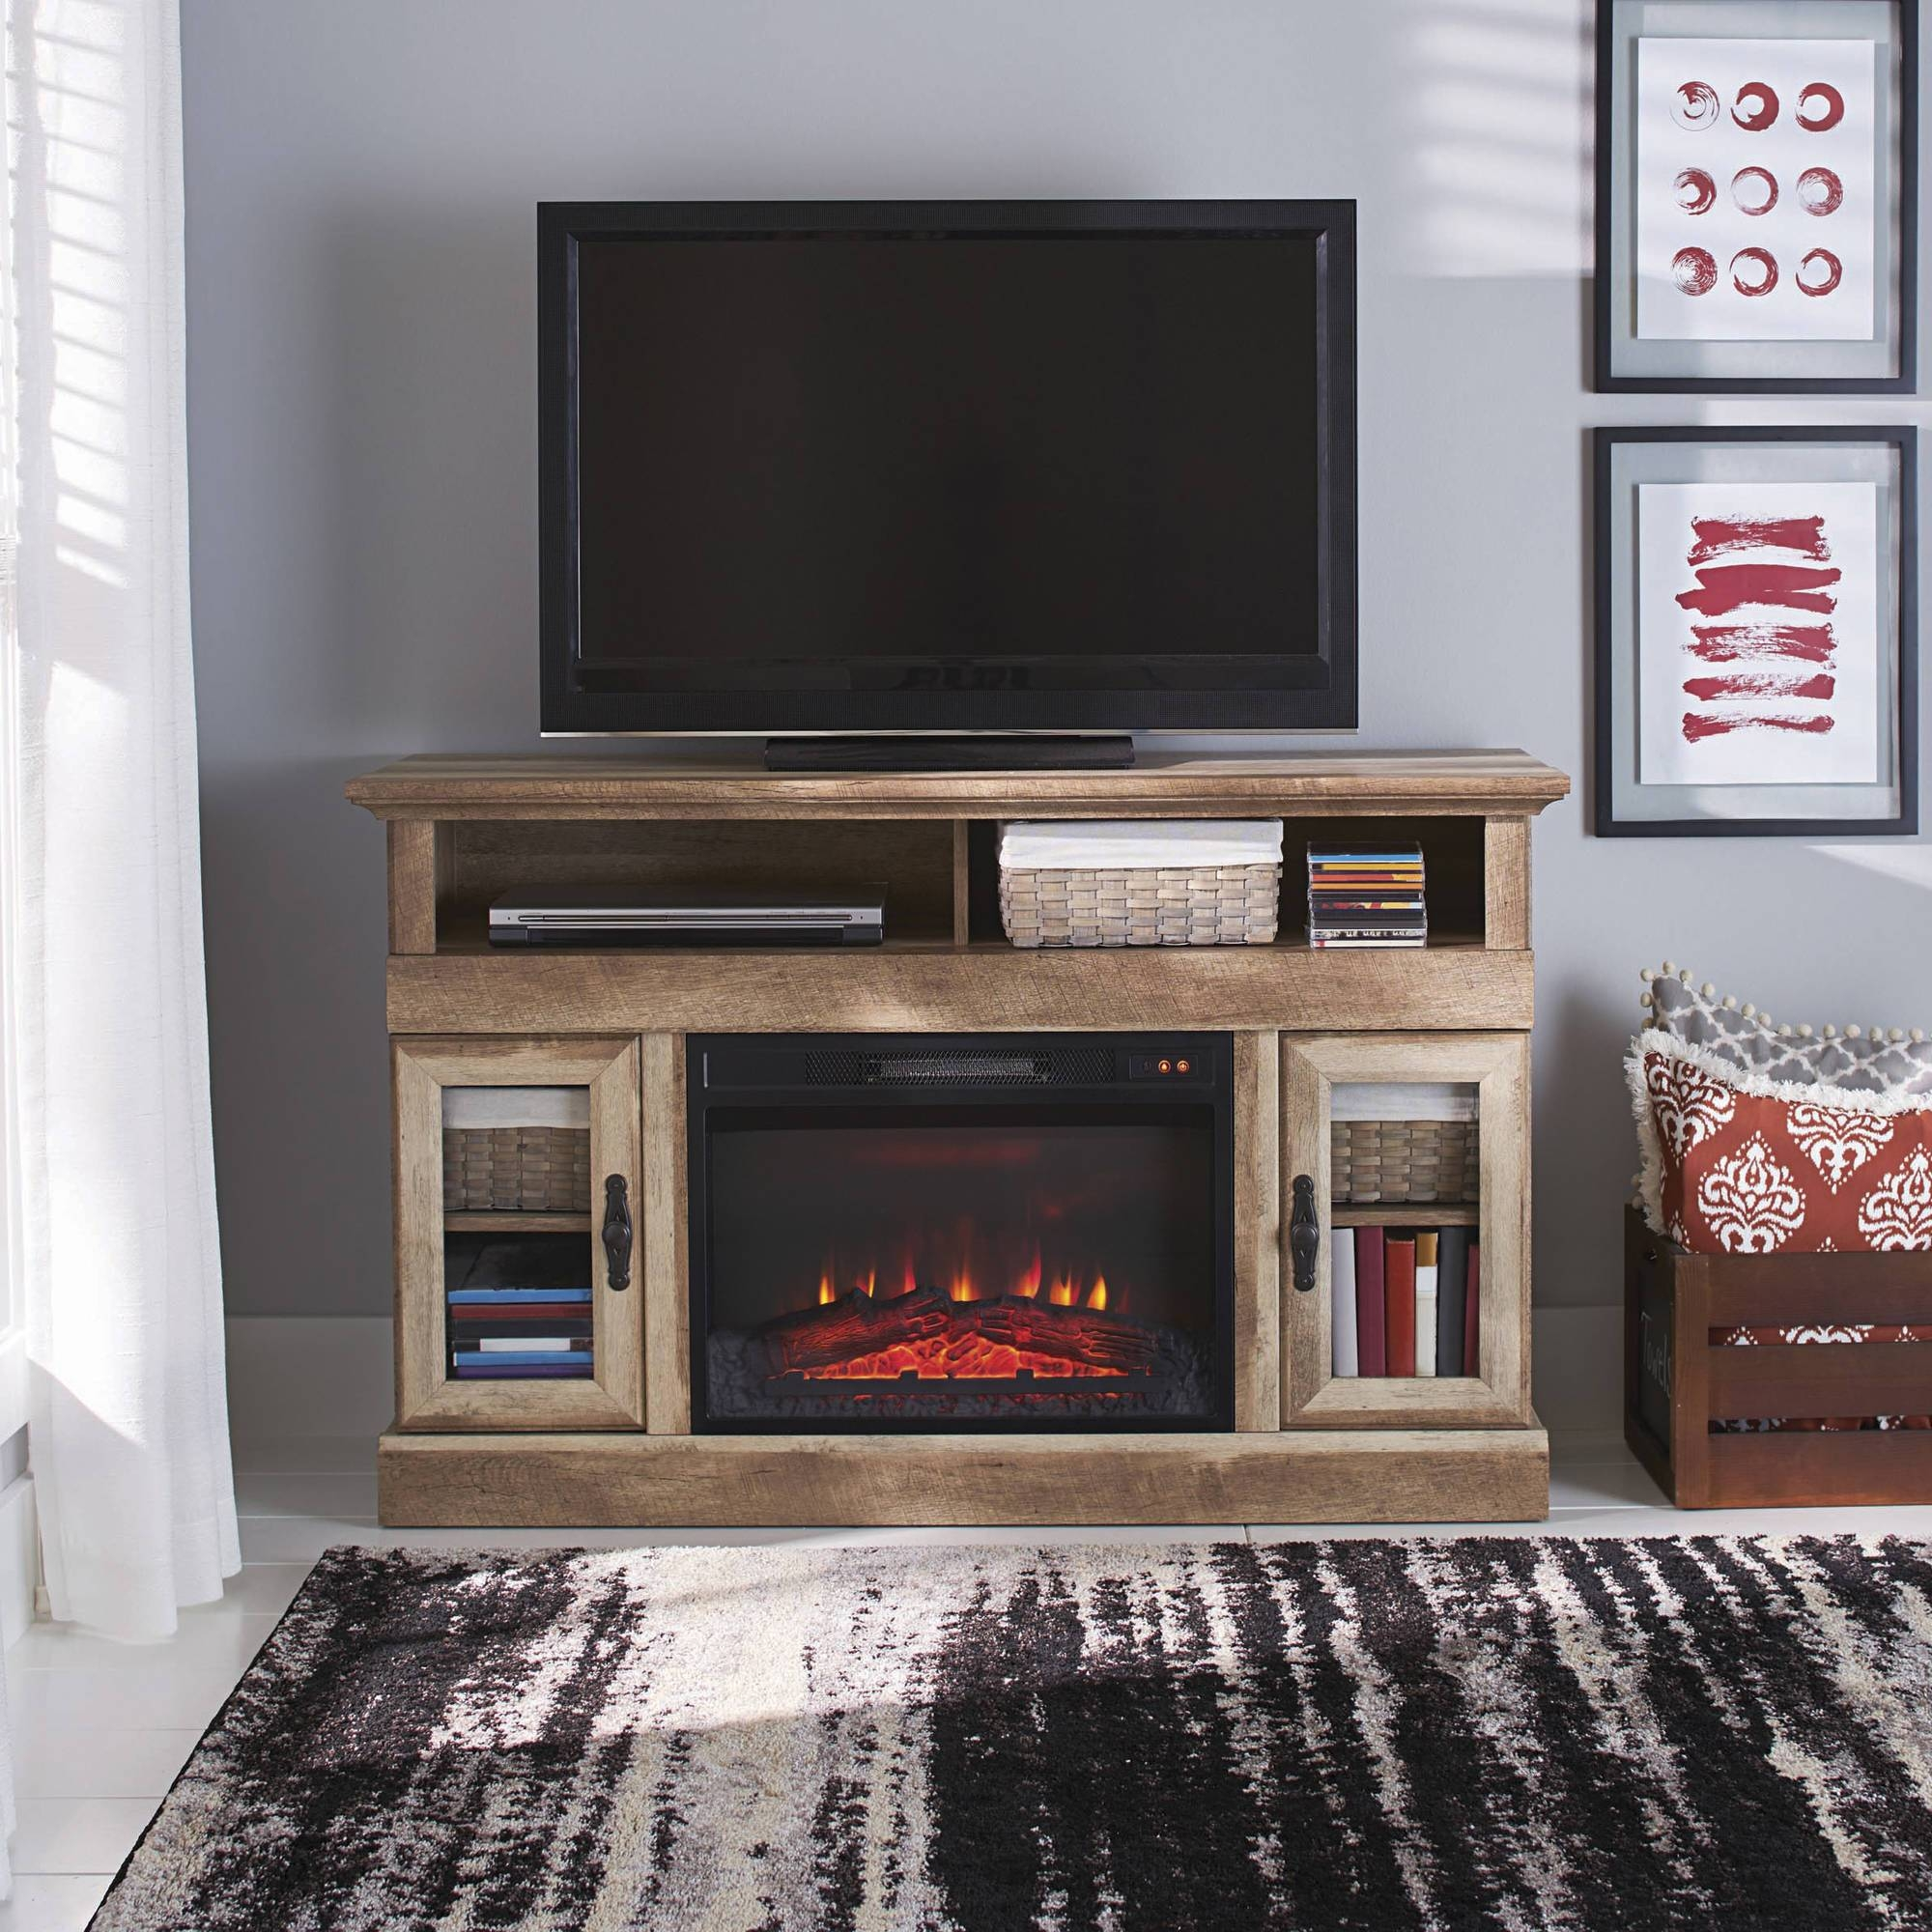 Tv Stands & Entertainment Centers – Walmart With Regard To Tv Cabinets With Storage (View 11 of 15)